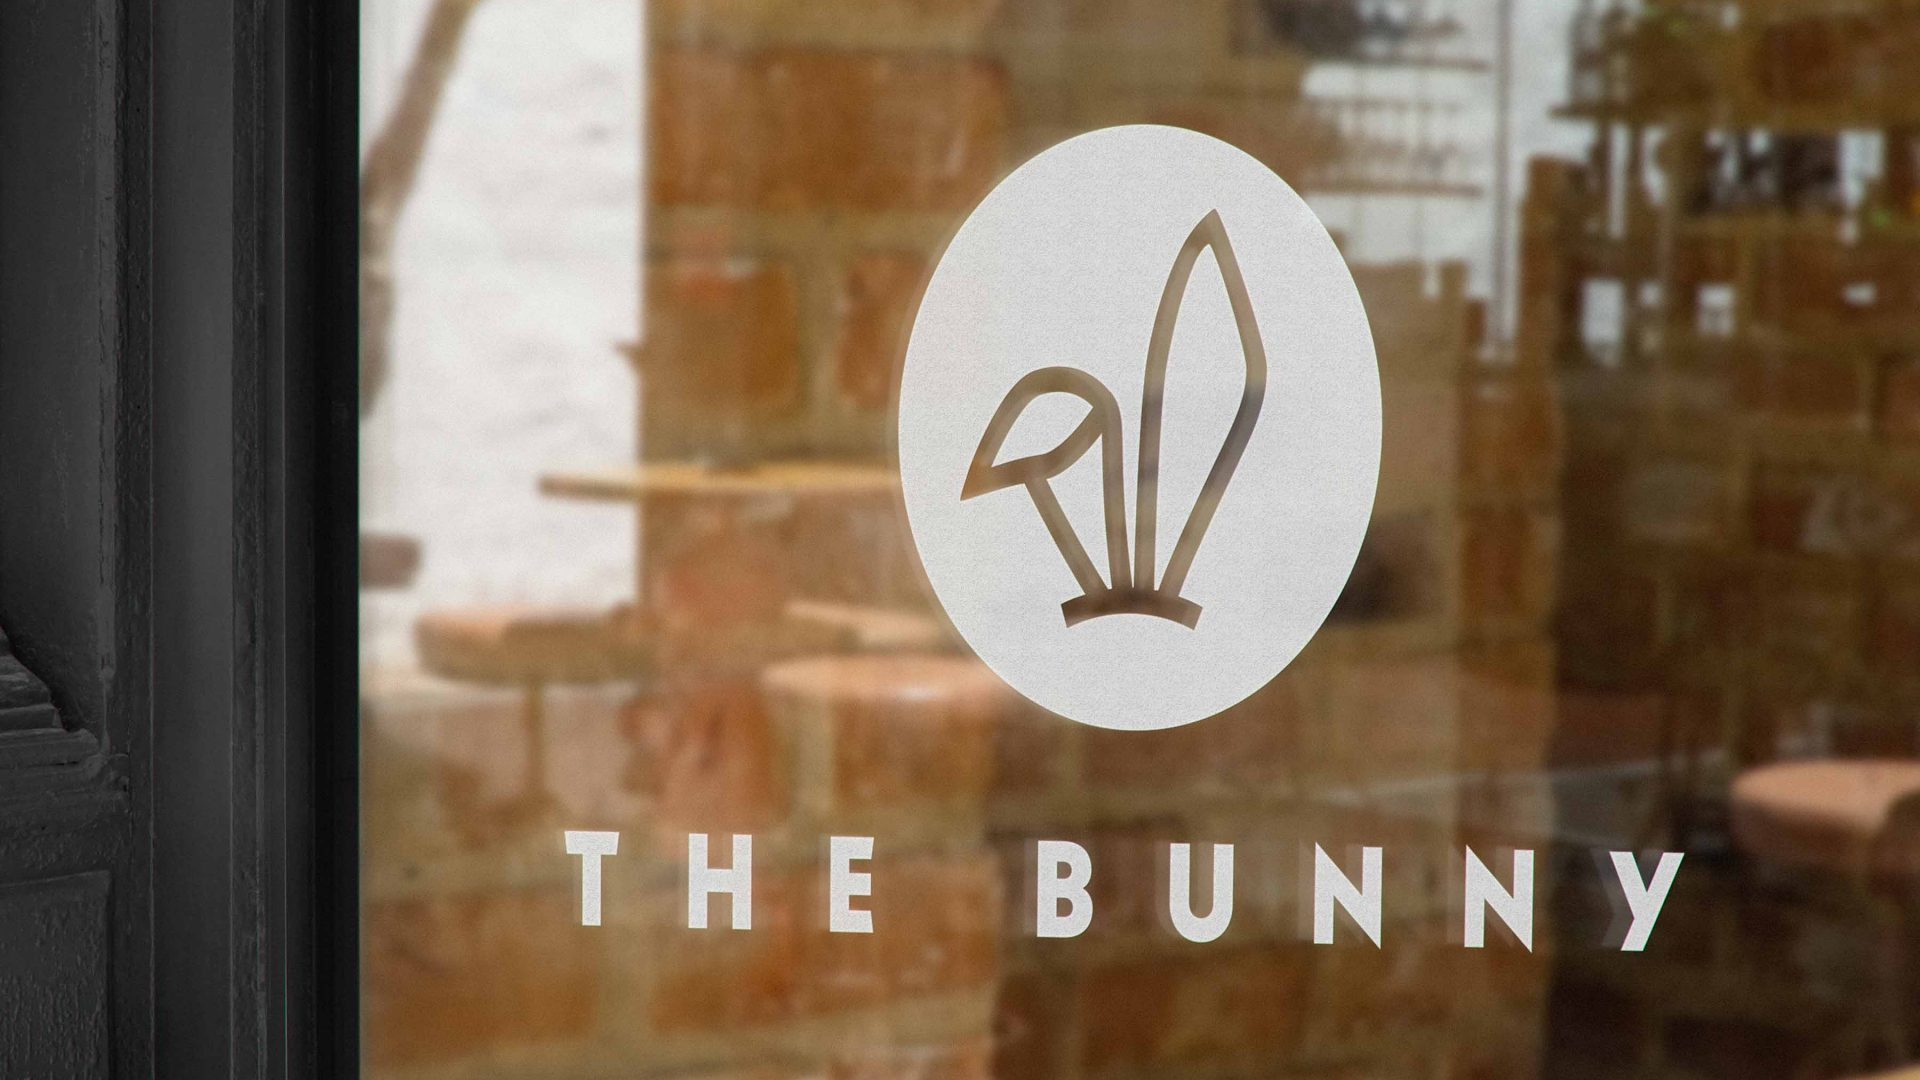 Brand identity design by Crate47. The Bunny bubble tea logo and marque in white on a shop window